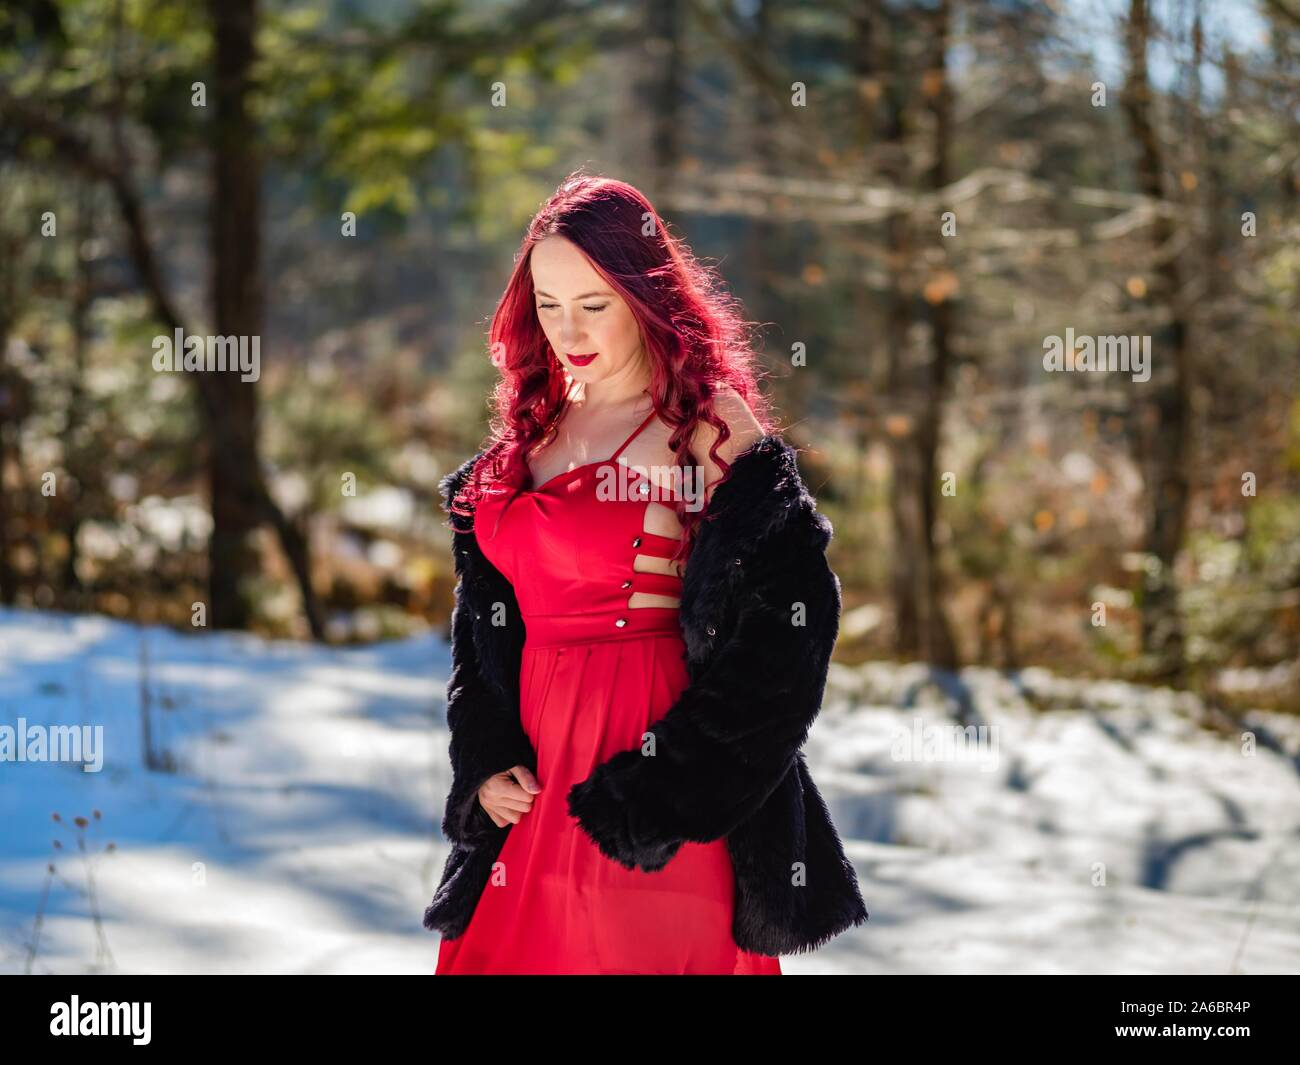 Young woman on snow dressed fancifully is walking on snow in forest Stock Photo